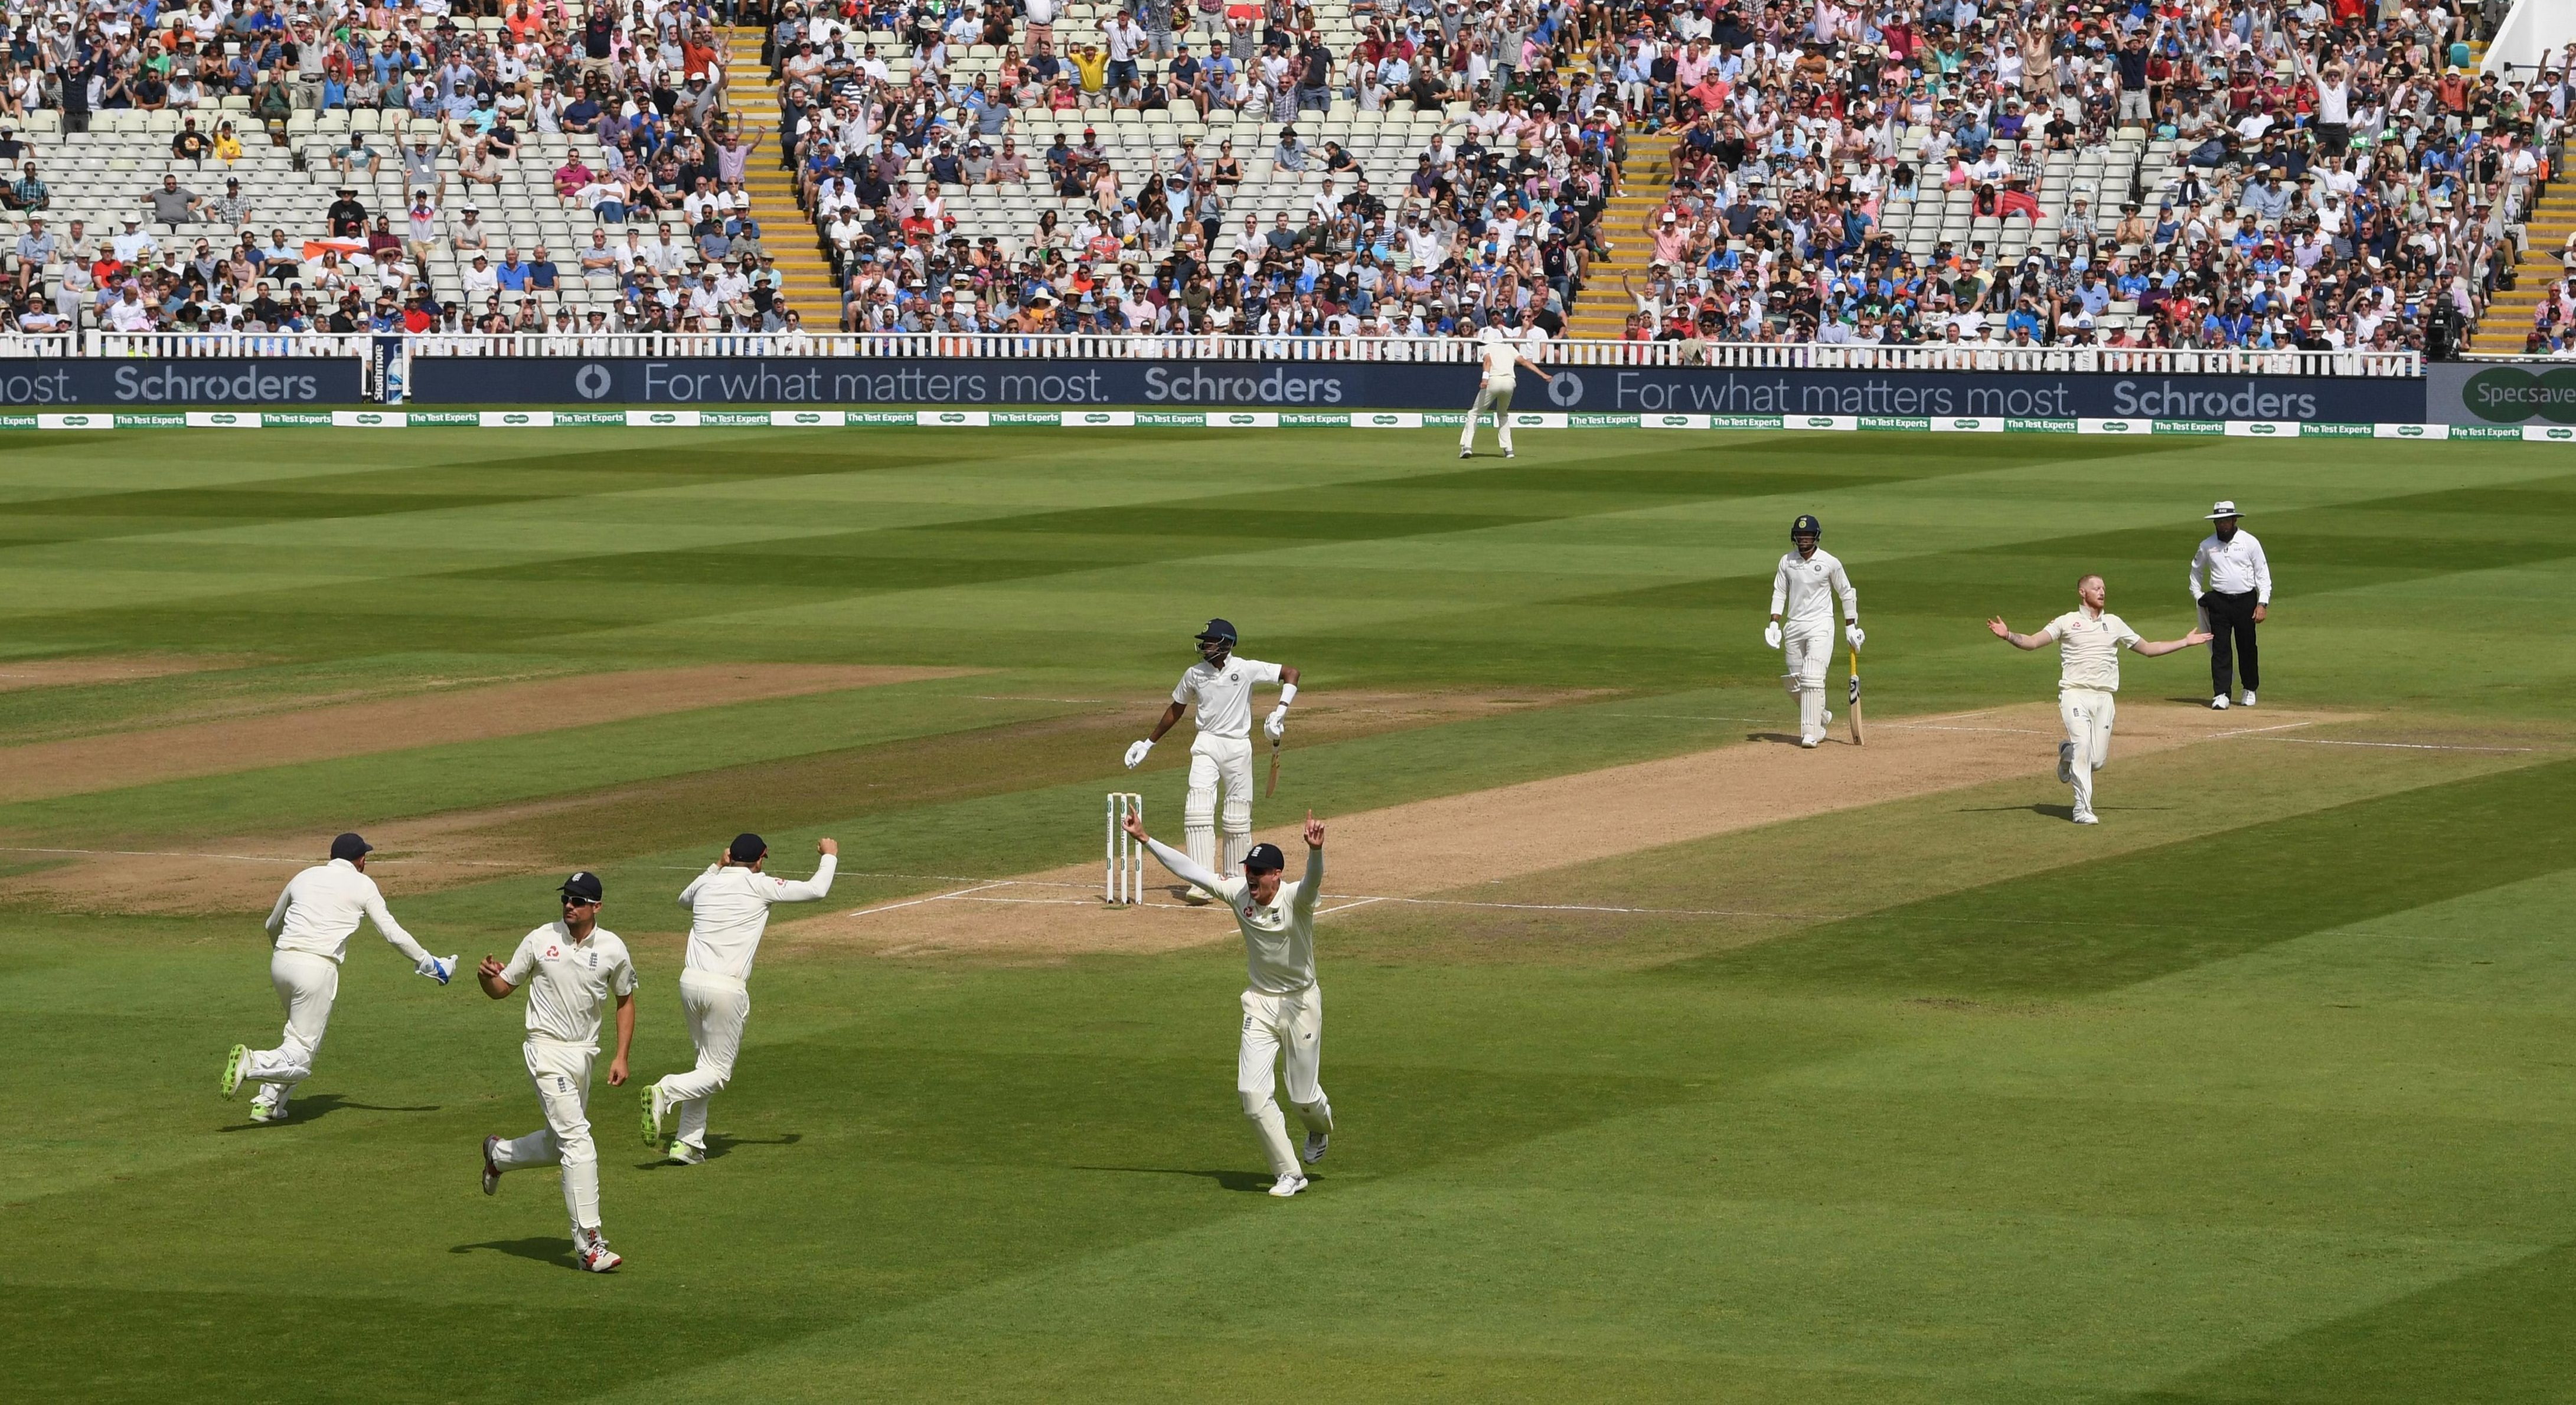 Ben Stokes took three wickets on day four with Alastair Cook holding onto the catch to dismiss Hardik Pandya and seal victory